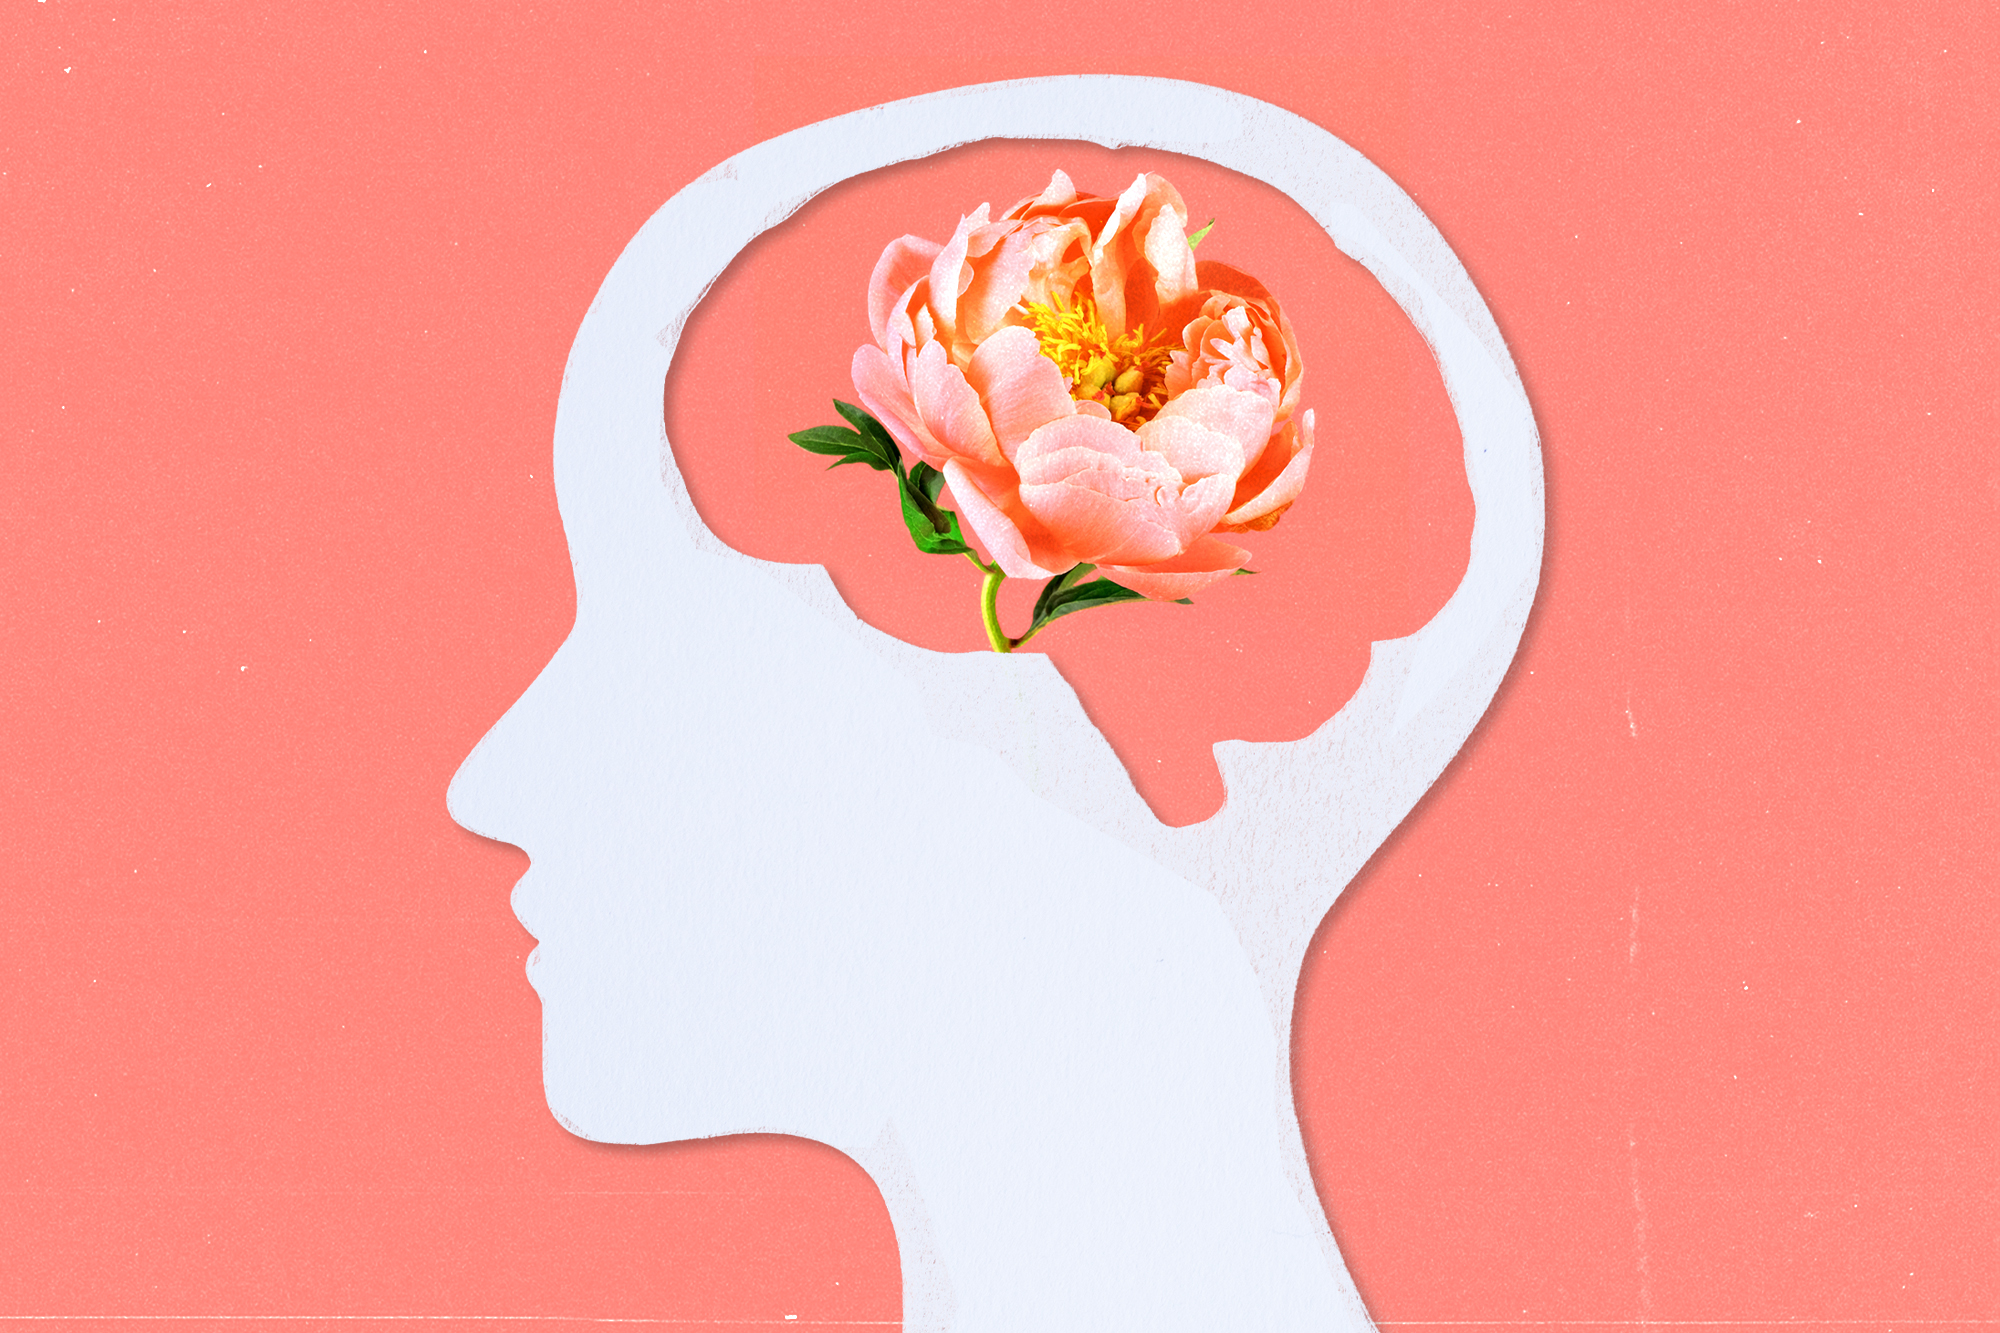 The cutout of a human head with a brain cutout exposing a flower on a pink background